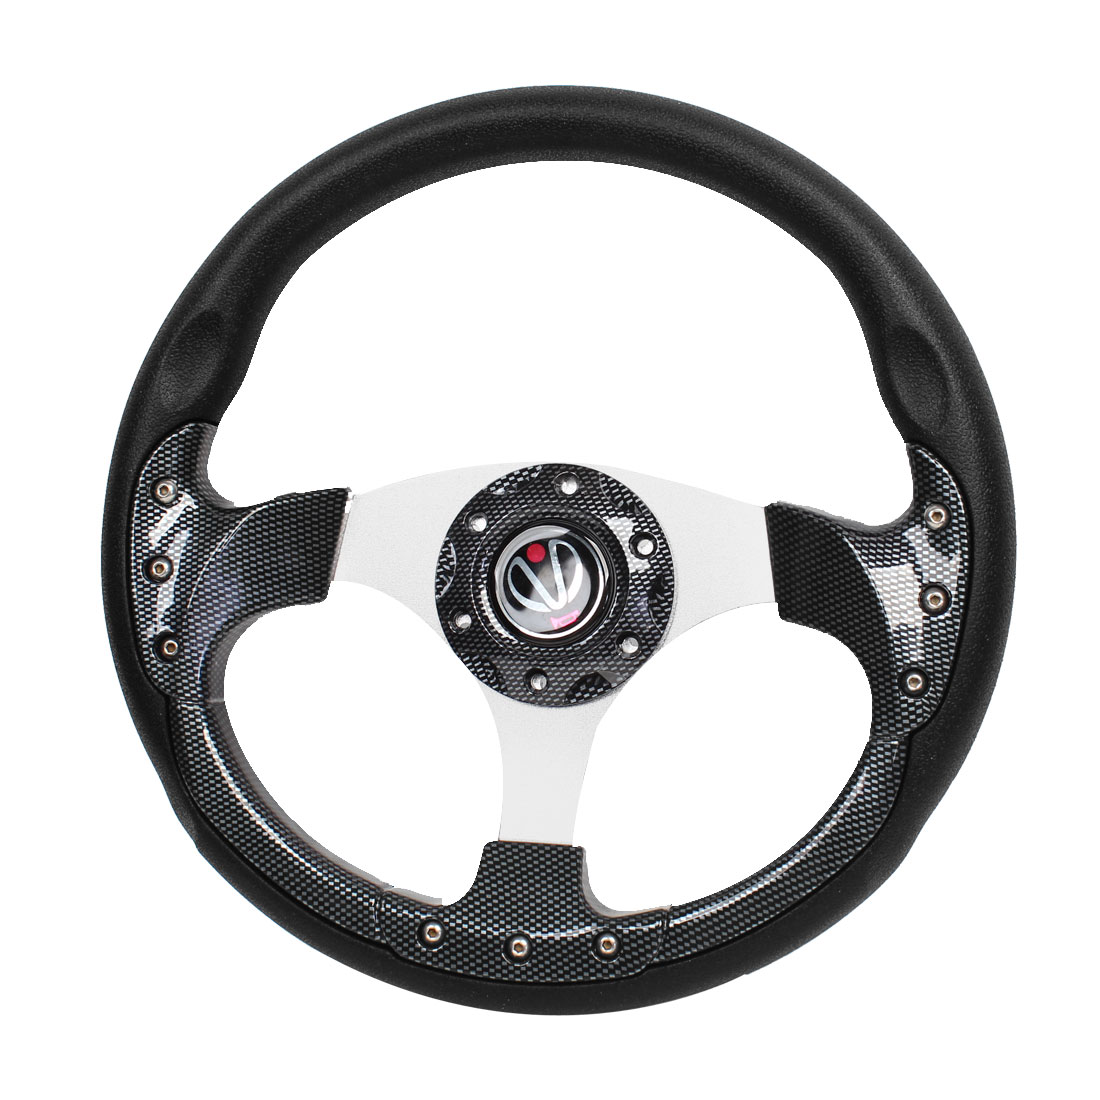 32cm Dia Carbon Fiber Pattern Faux Leather Coated Steering Wheel for Car